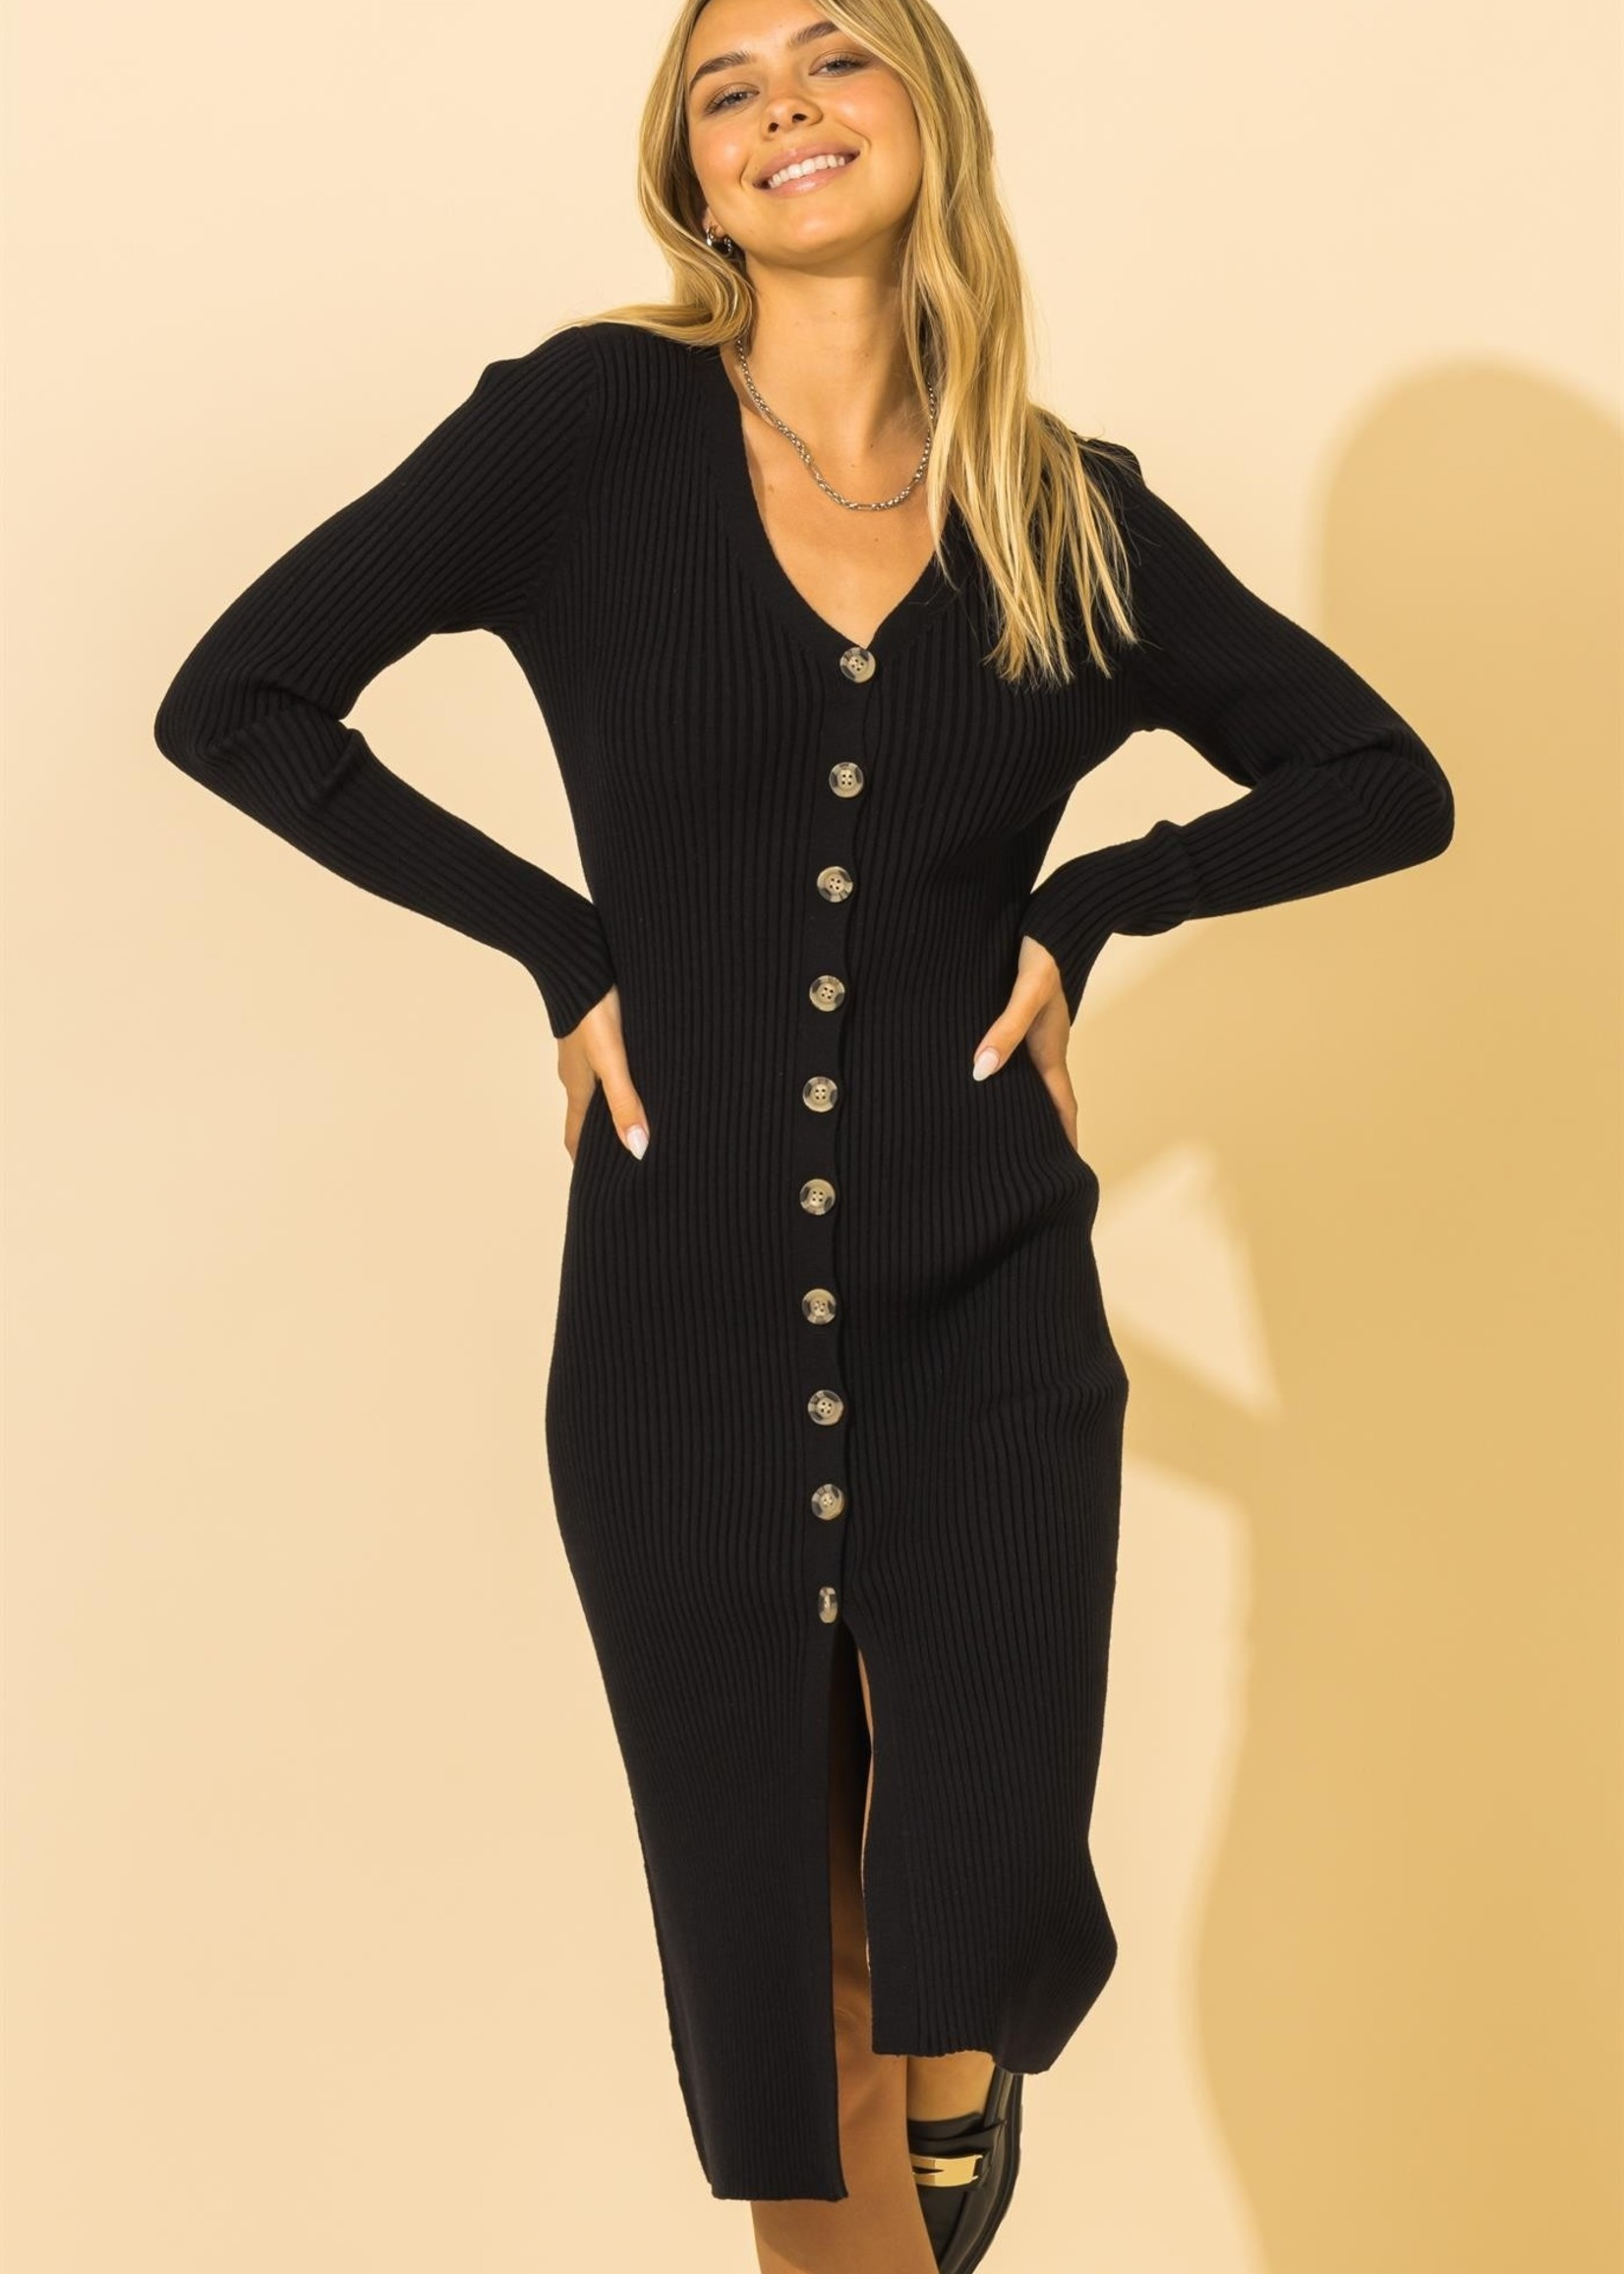 Ribbed Button Up Dress - Black